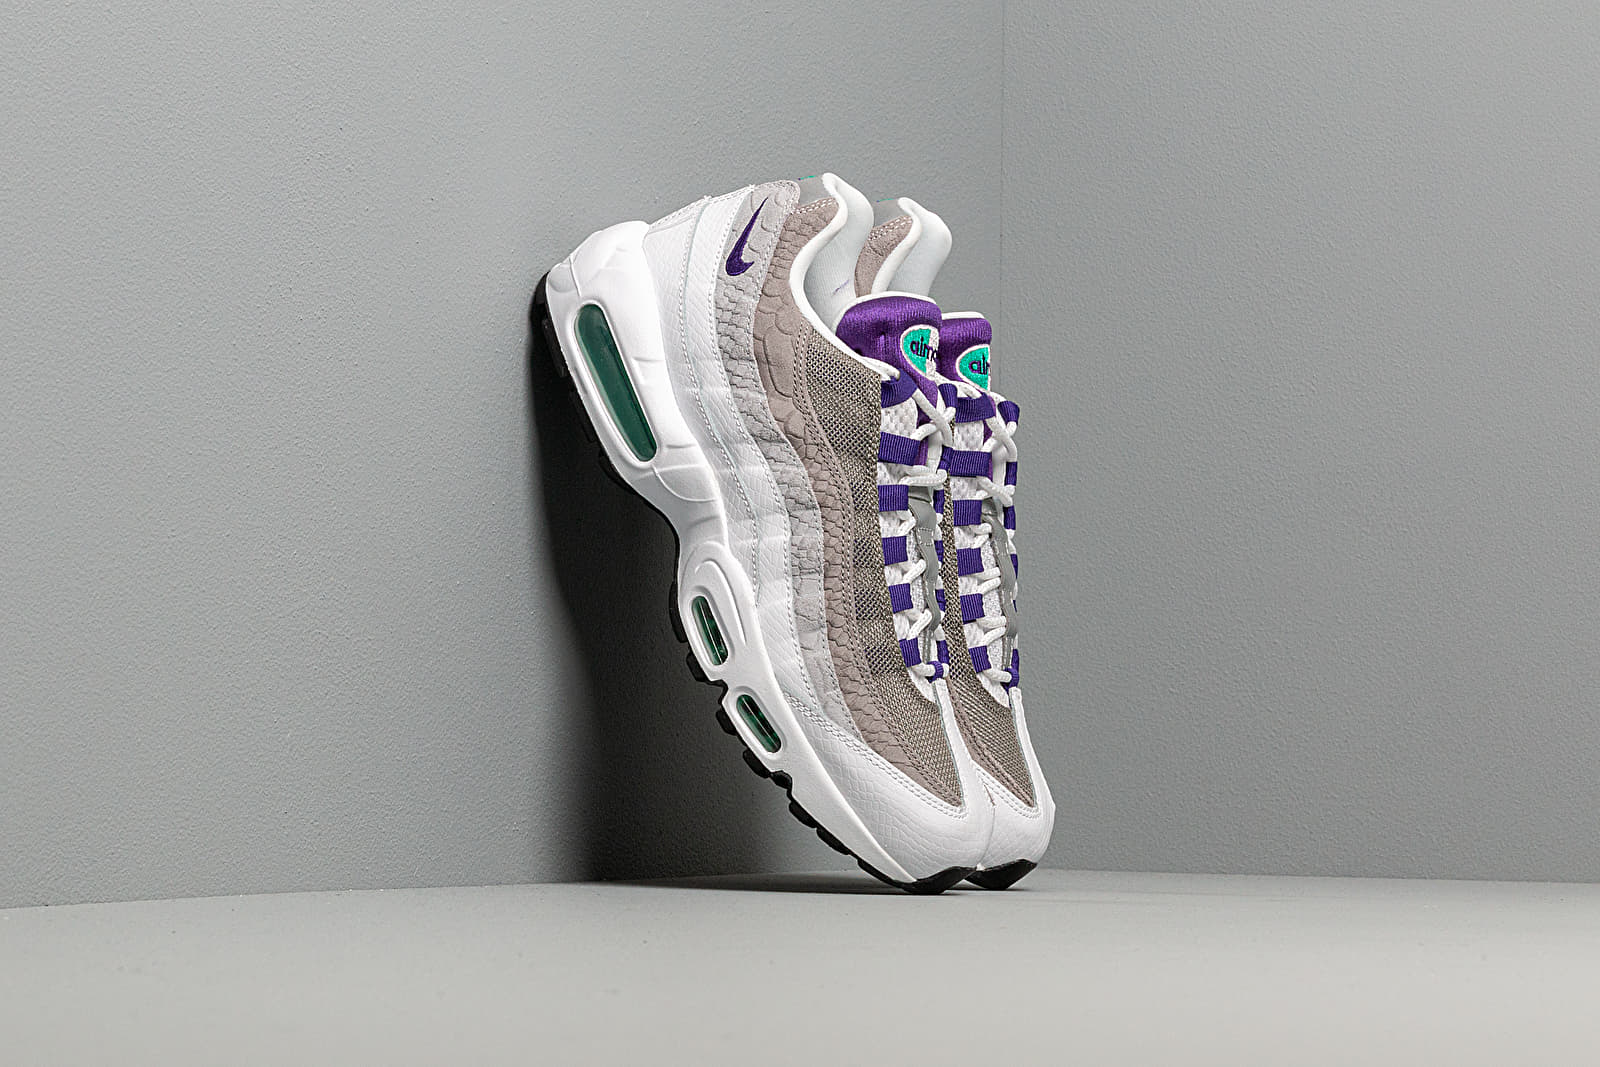 Men's shoes Nike Air Max 95 Lv8 White/ Court Purple-Emerald Green